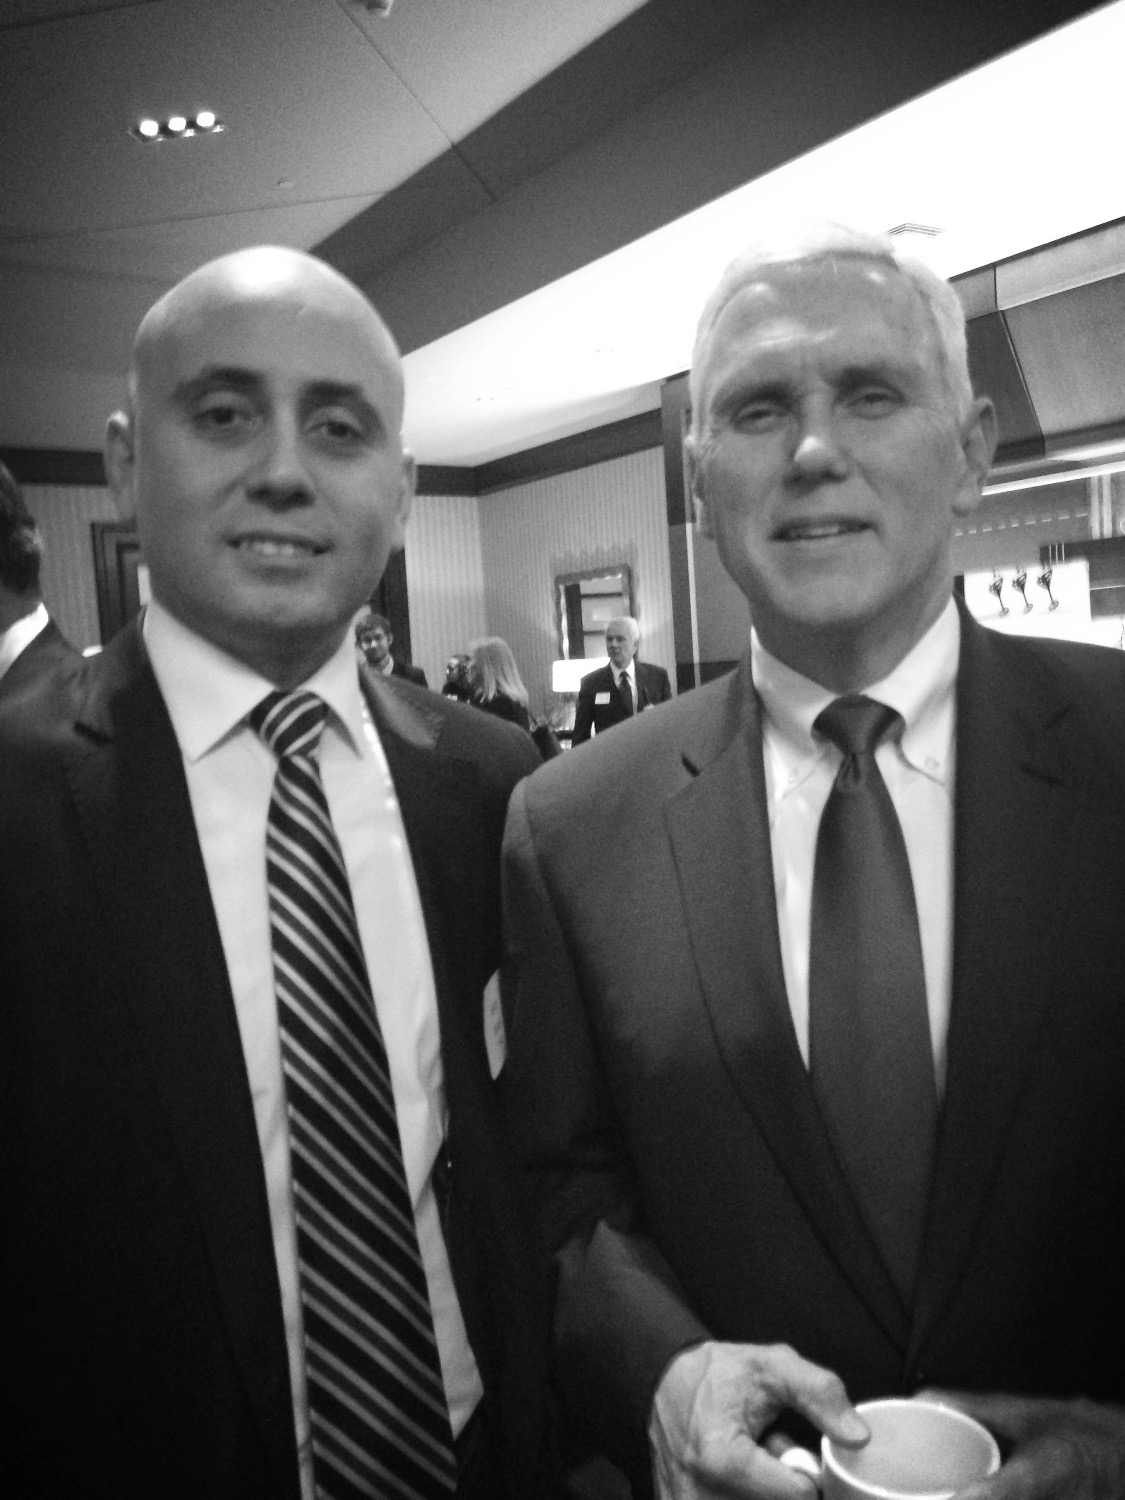 Bilal Eksili with VP Mike Pence